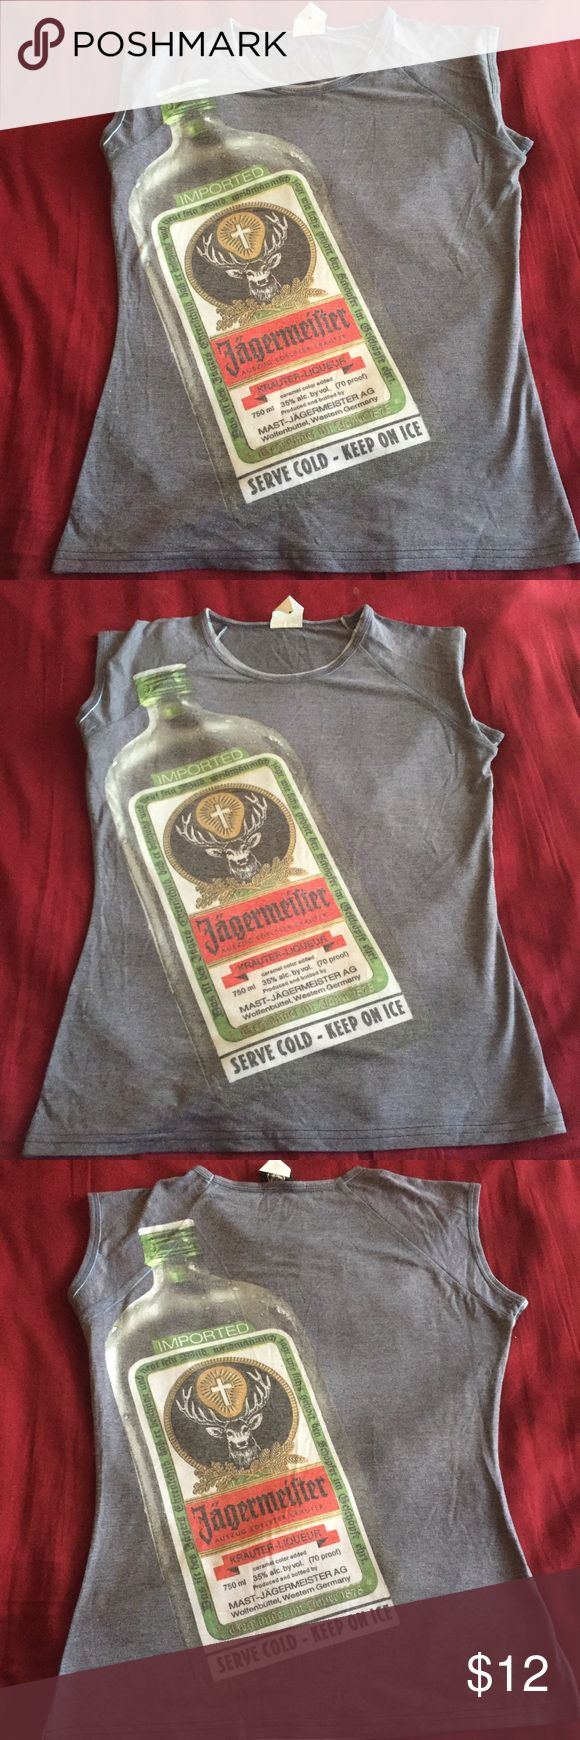 Jagermeister Top Woman's gray NWOT jäger fitted shirt. Size large 94% polyester 6% spandex Jagermeister  Tops Tees - Short Sleeve